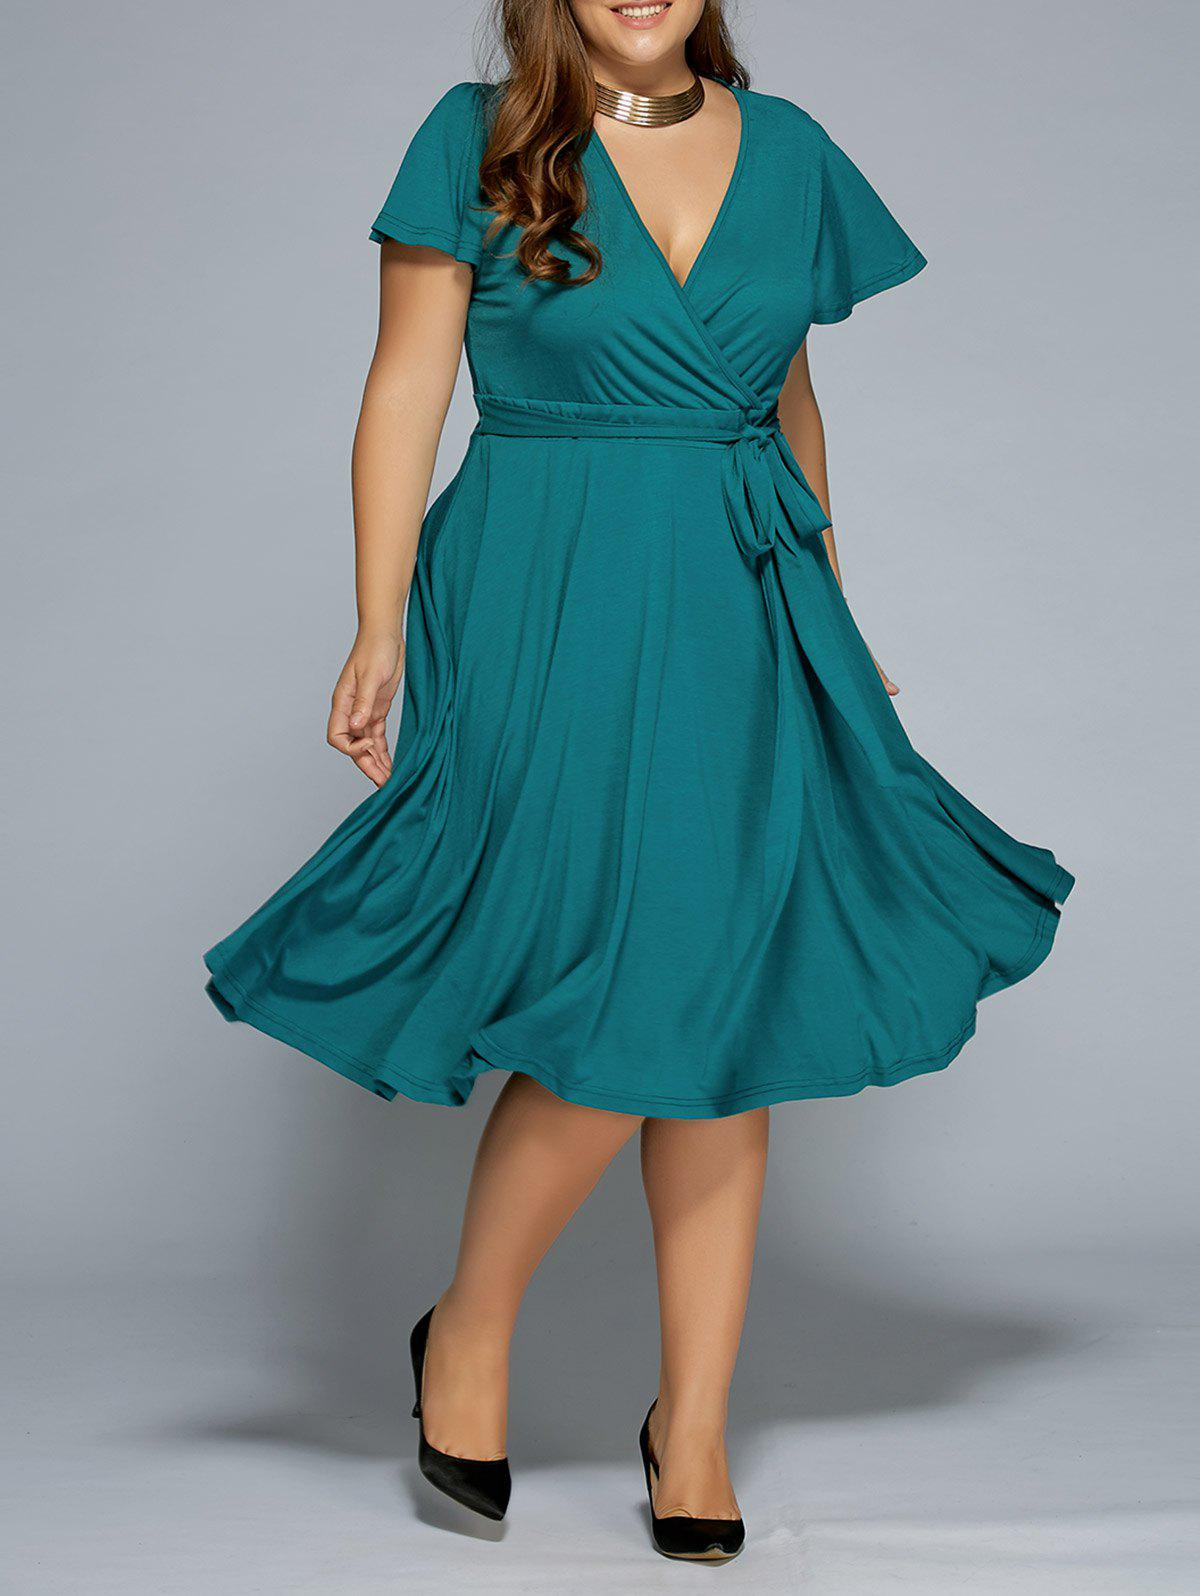 Low Cut A Line Plus Size Surplice Front Tie Swing DressWOMEN<br><br>Size: 6XL; Color: GREEN; Style: Casual; Material: Cotton,Polyester; Silhouette: A-Line; Dresses Length: Mid-Calf; Neckline: V-Neck; Sleeve Length: Short Sleeves; Pattern Type: Solid; With Belt: No; Season: Summer; Weight: 0.5260kg; Package Contents: 1 x Dress;